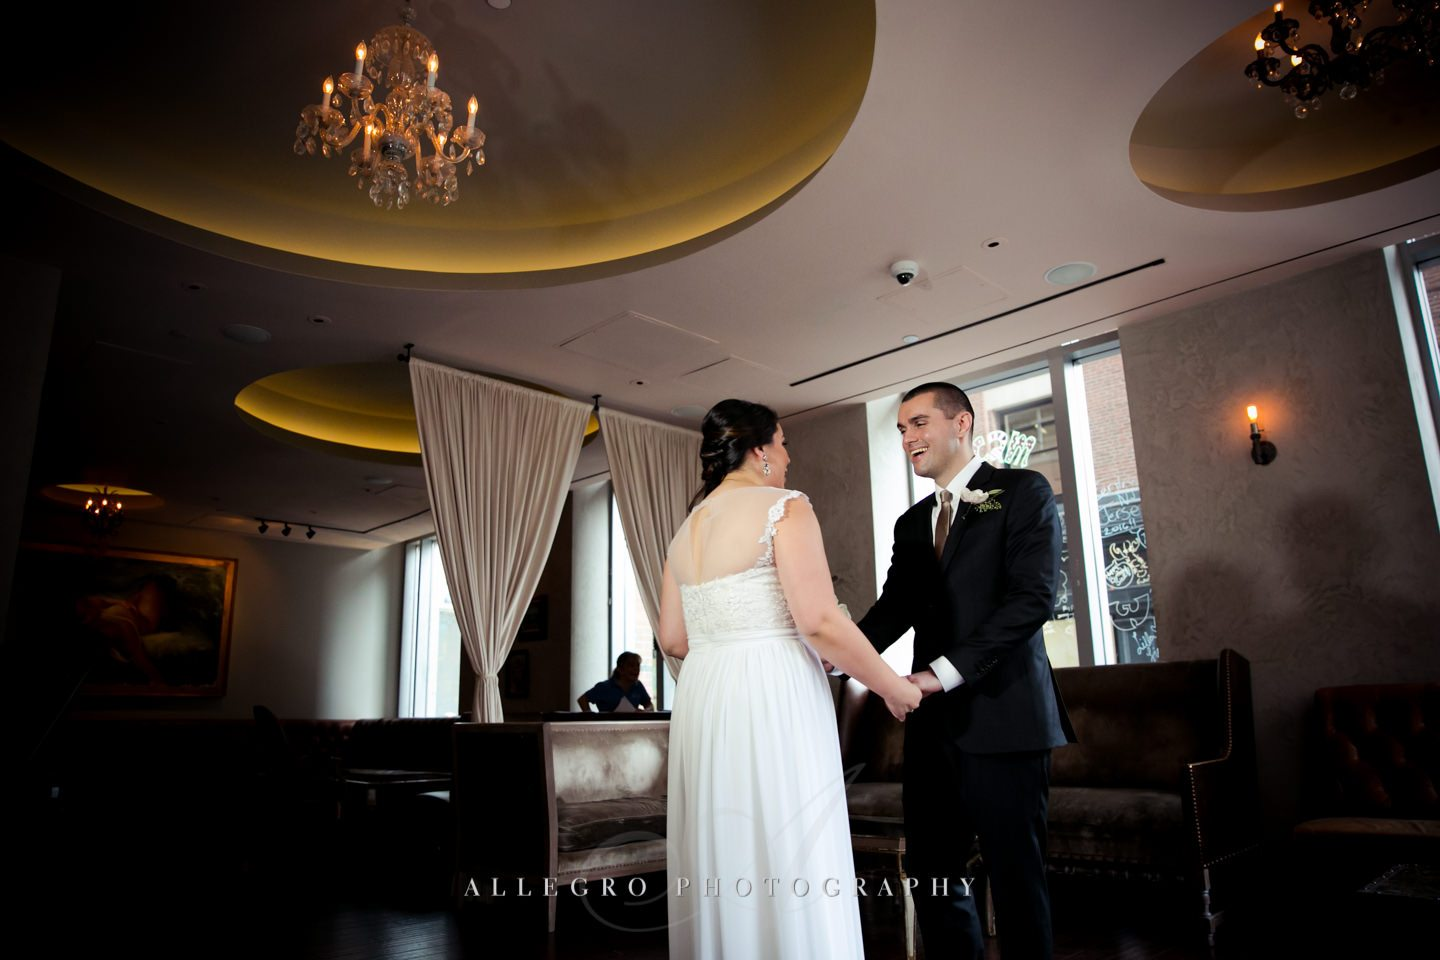 checking her dress out -photo by Allegro Photography